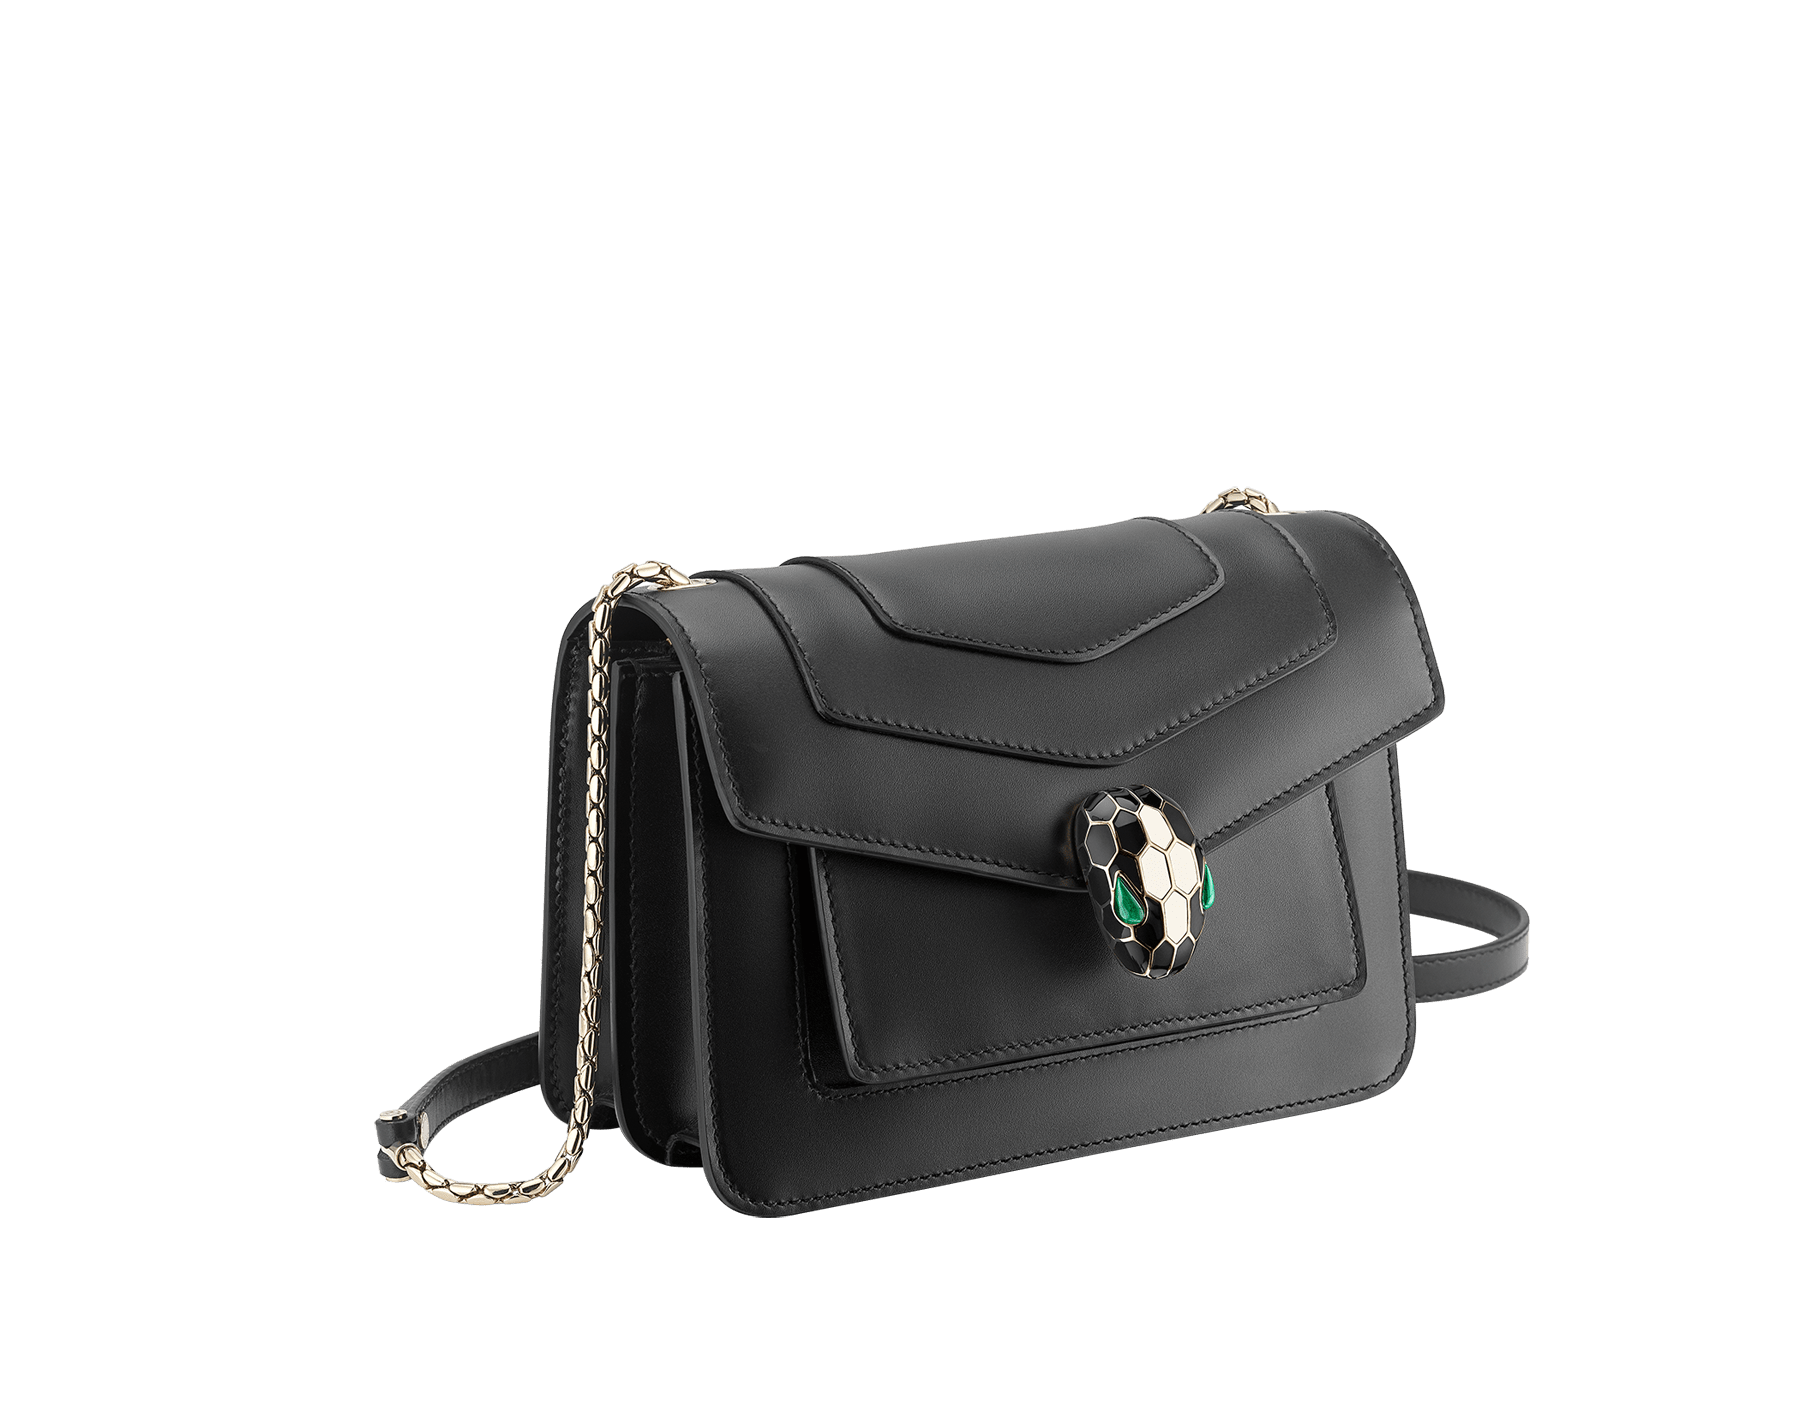 """Serpenti Forever"" crossbody bag in black calf leather. Iconic snakehead closure in light gold plated brass enriched with black and white agate enamel and green malachite eyes. 289677 image 3"